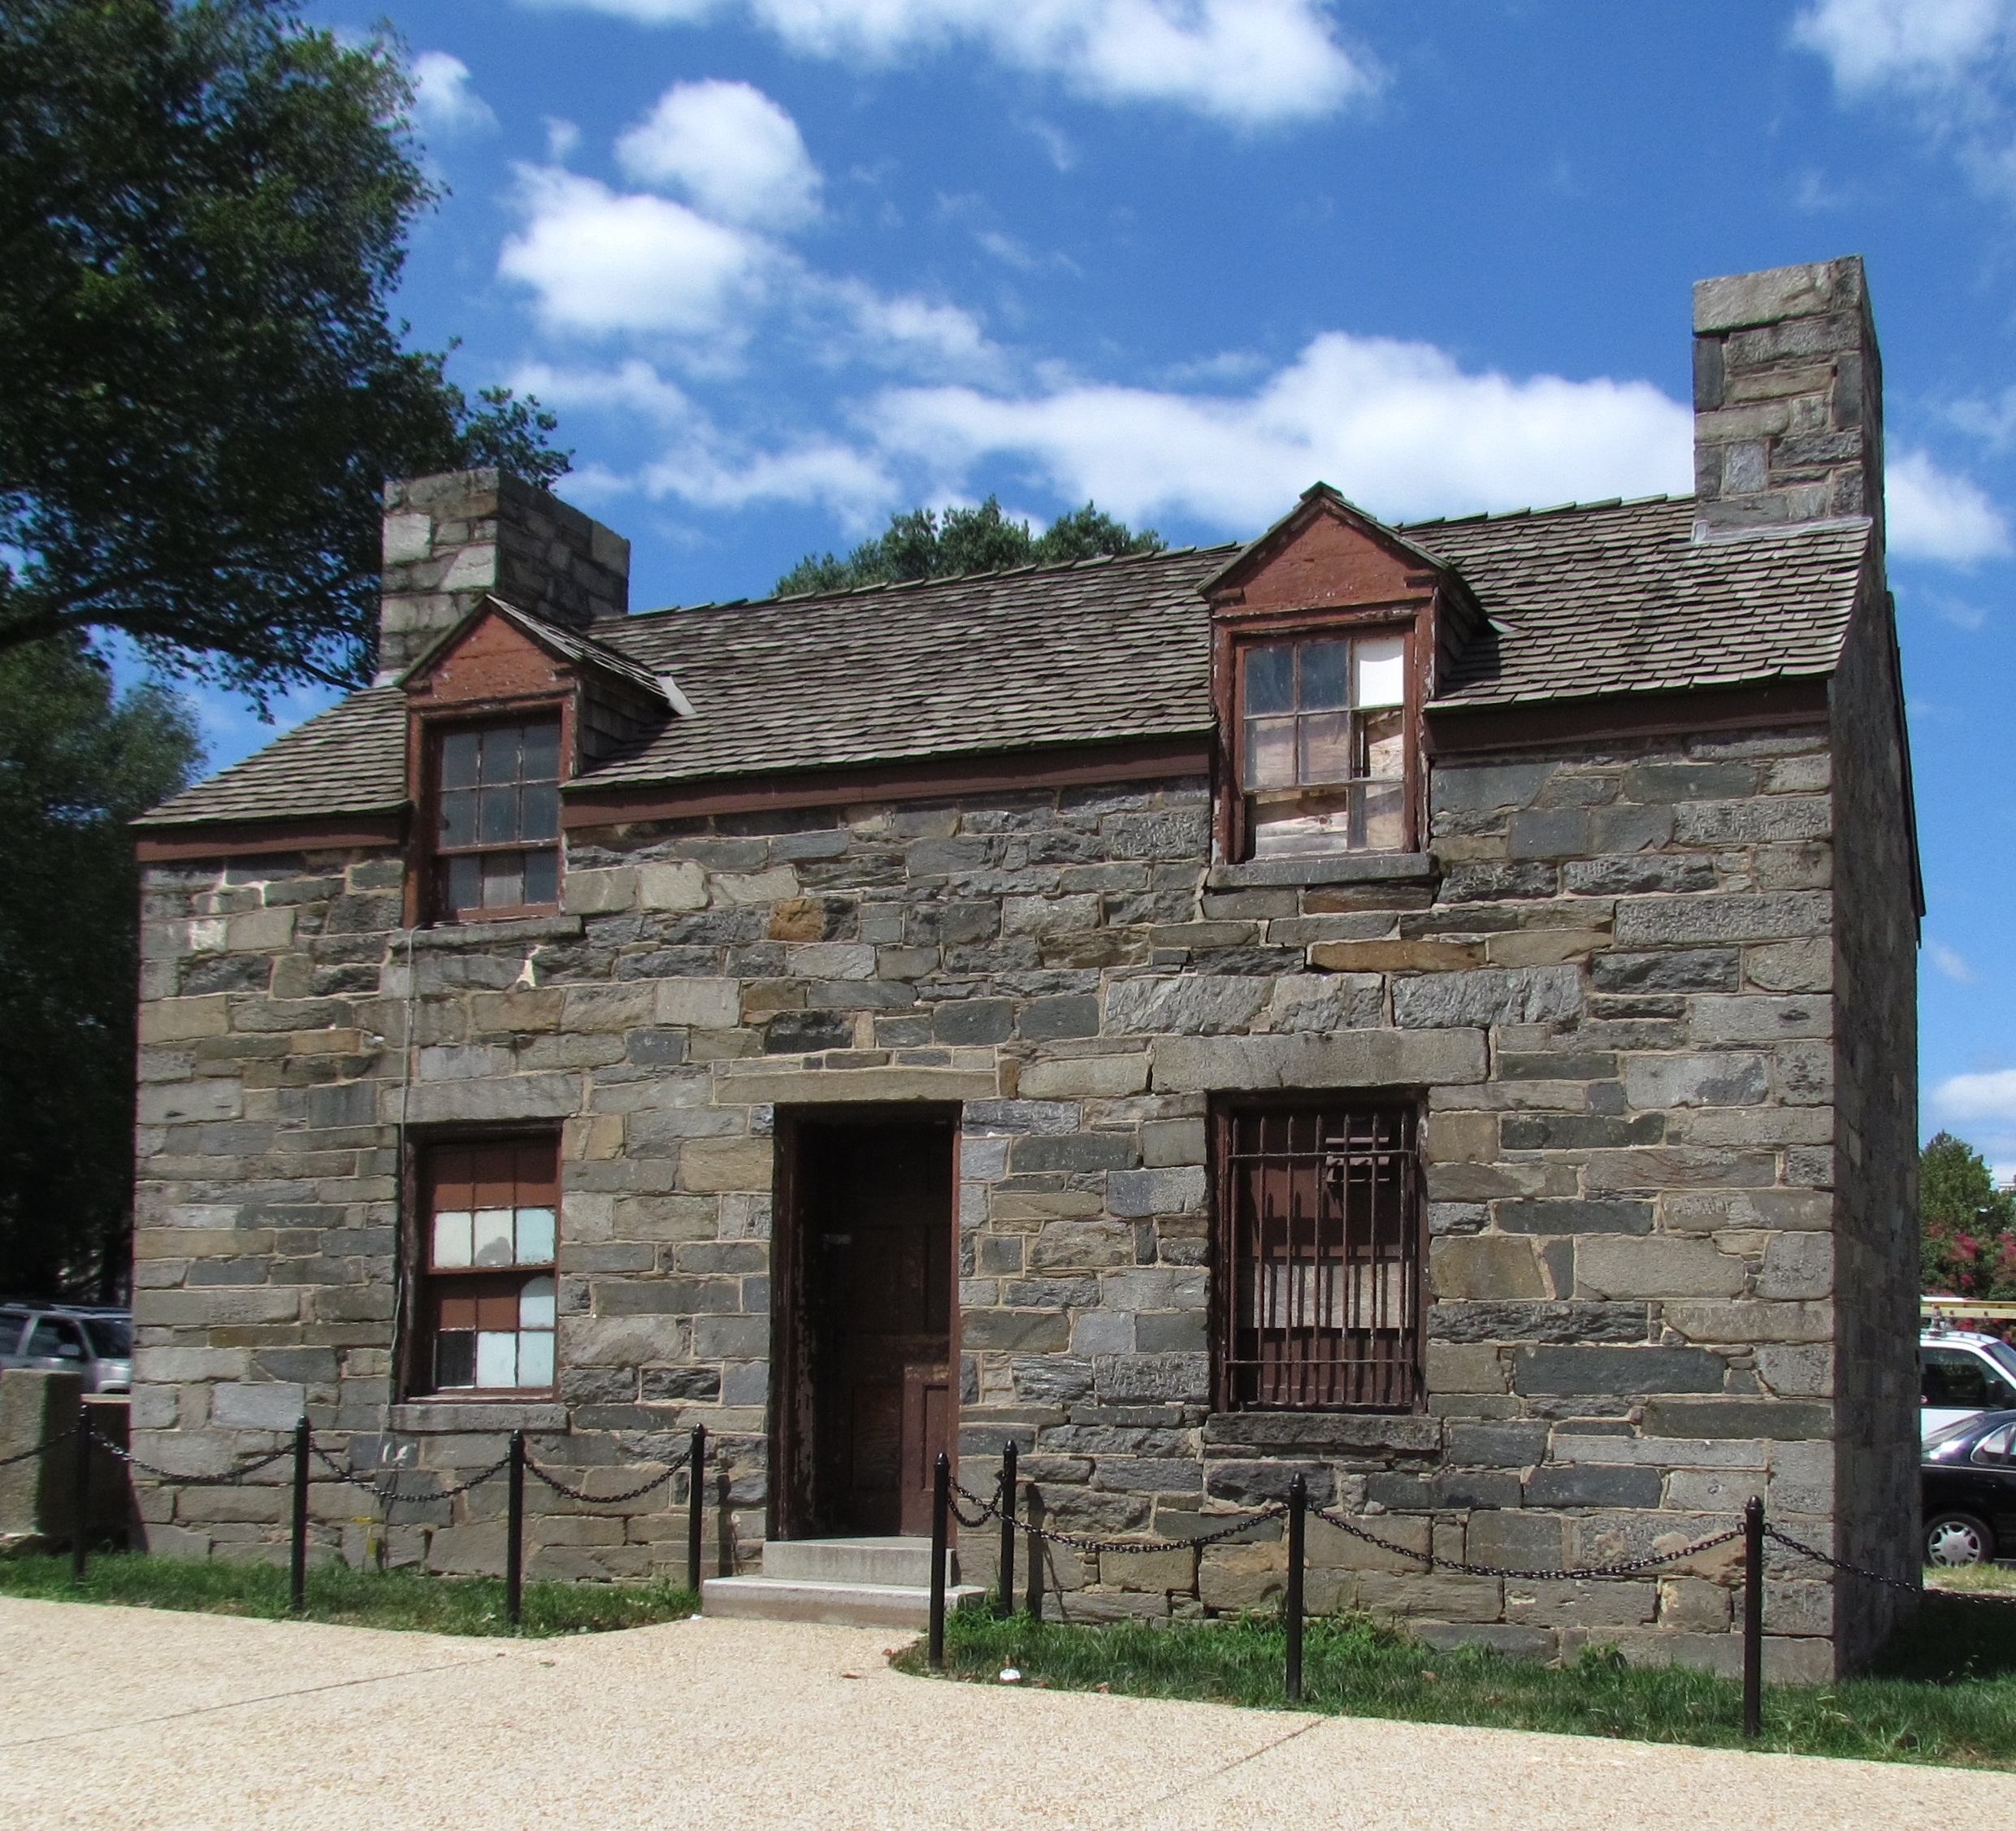 The Lockkeeper's House was built in 1835 at the eastern terminus of the C&O Canal